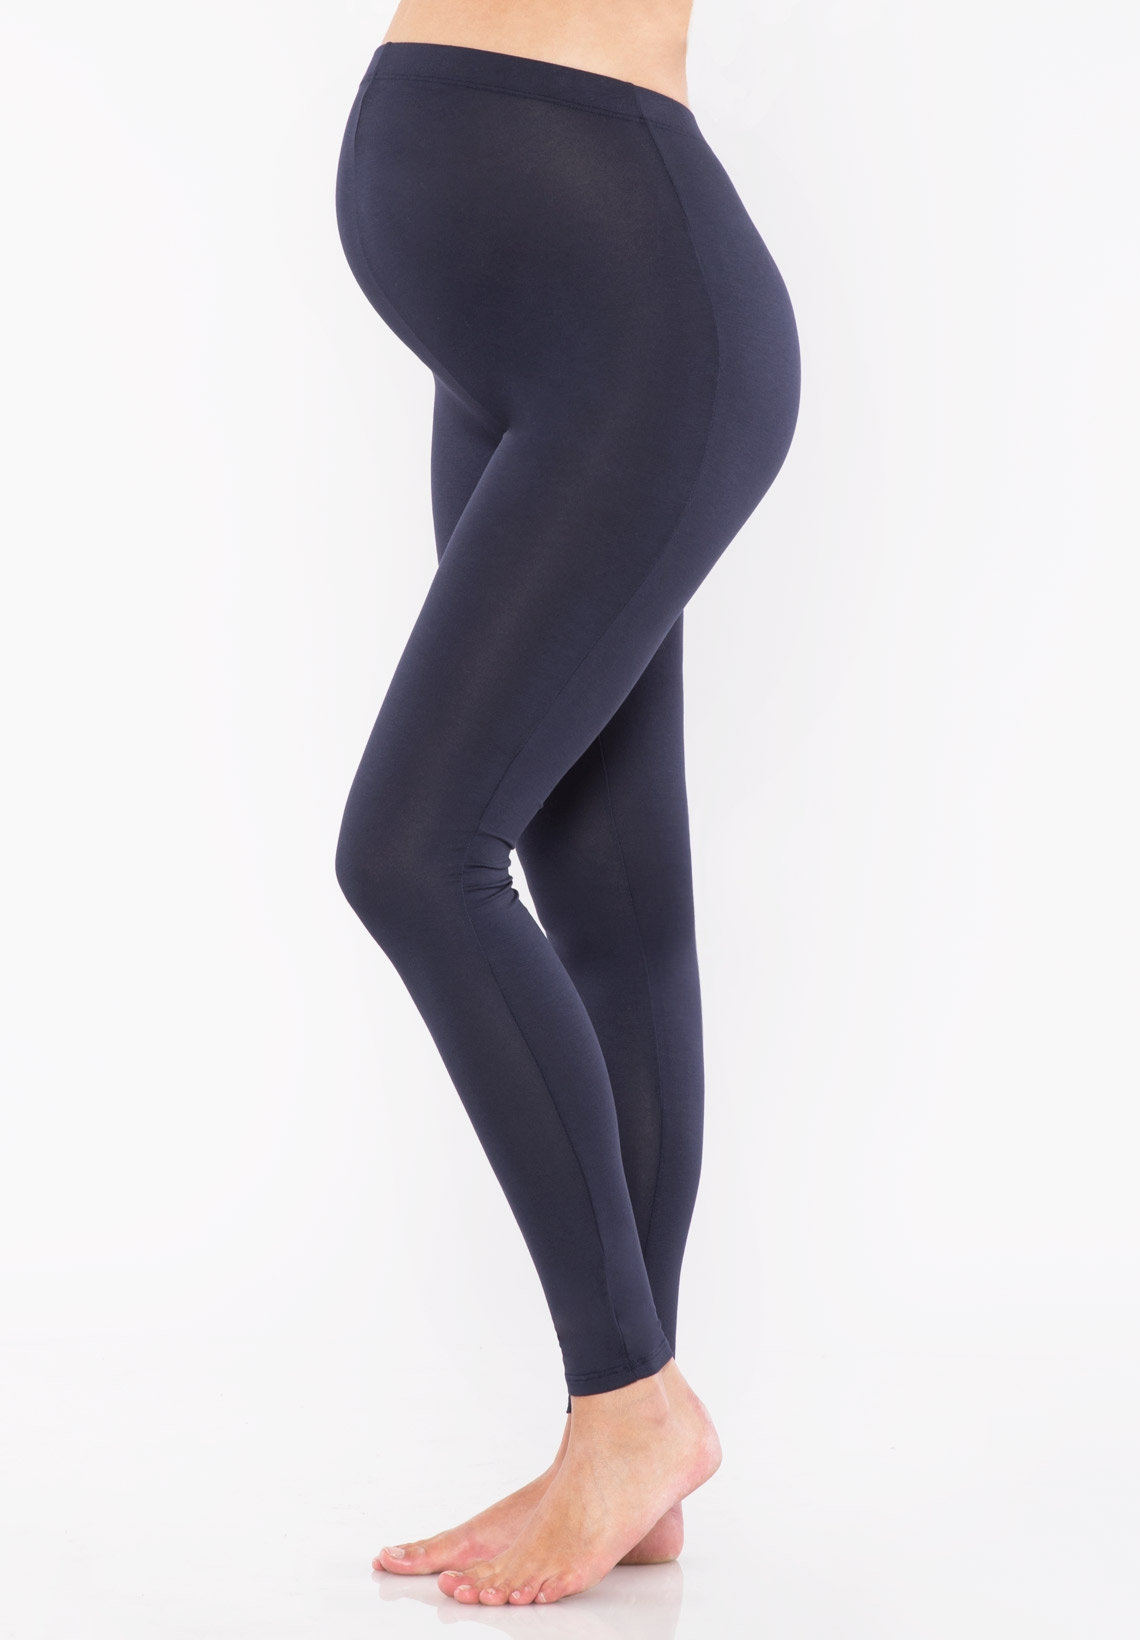 26f97dca350ff ... LEGGINGLONG - Maternity leggings with over belly band - Envie de Fraise  ...